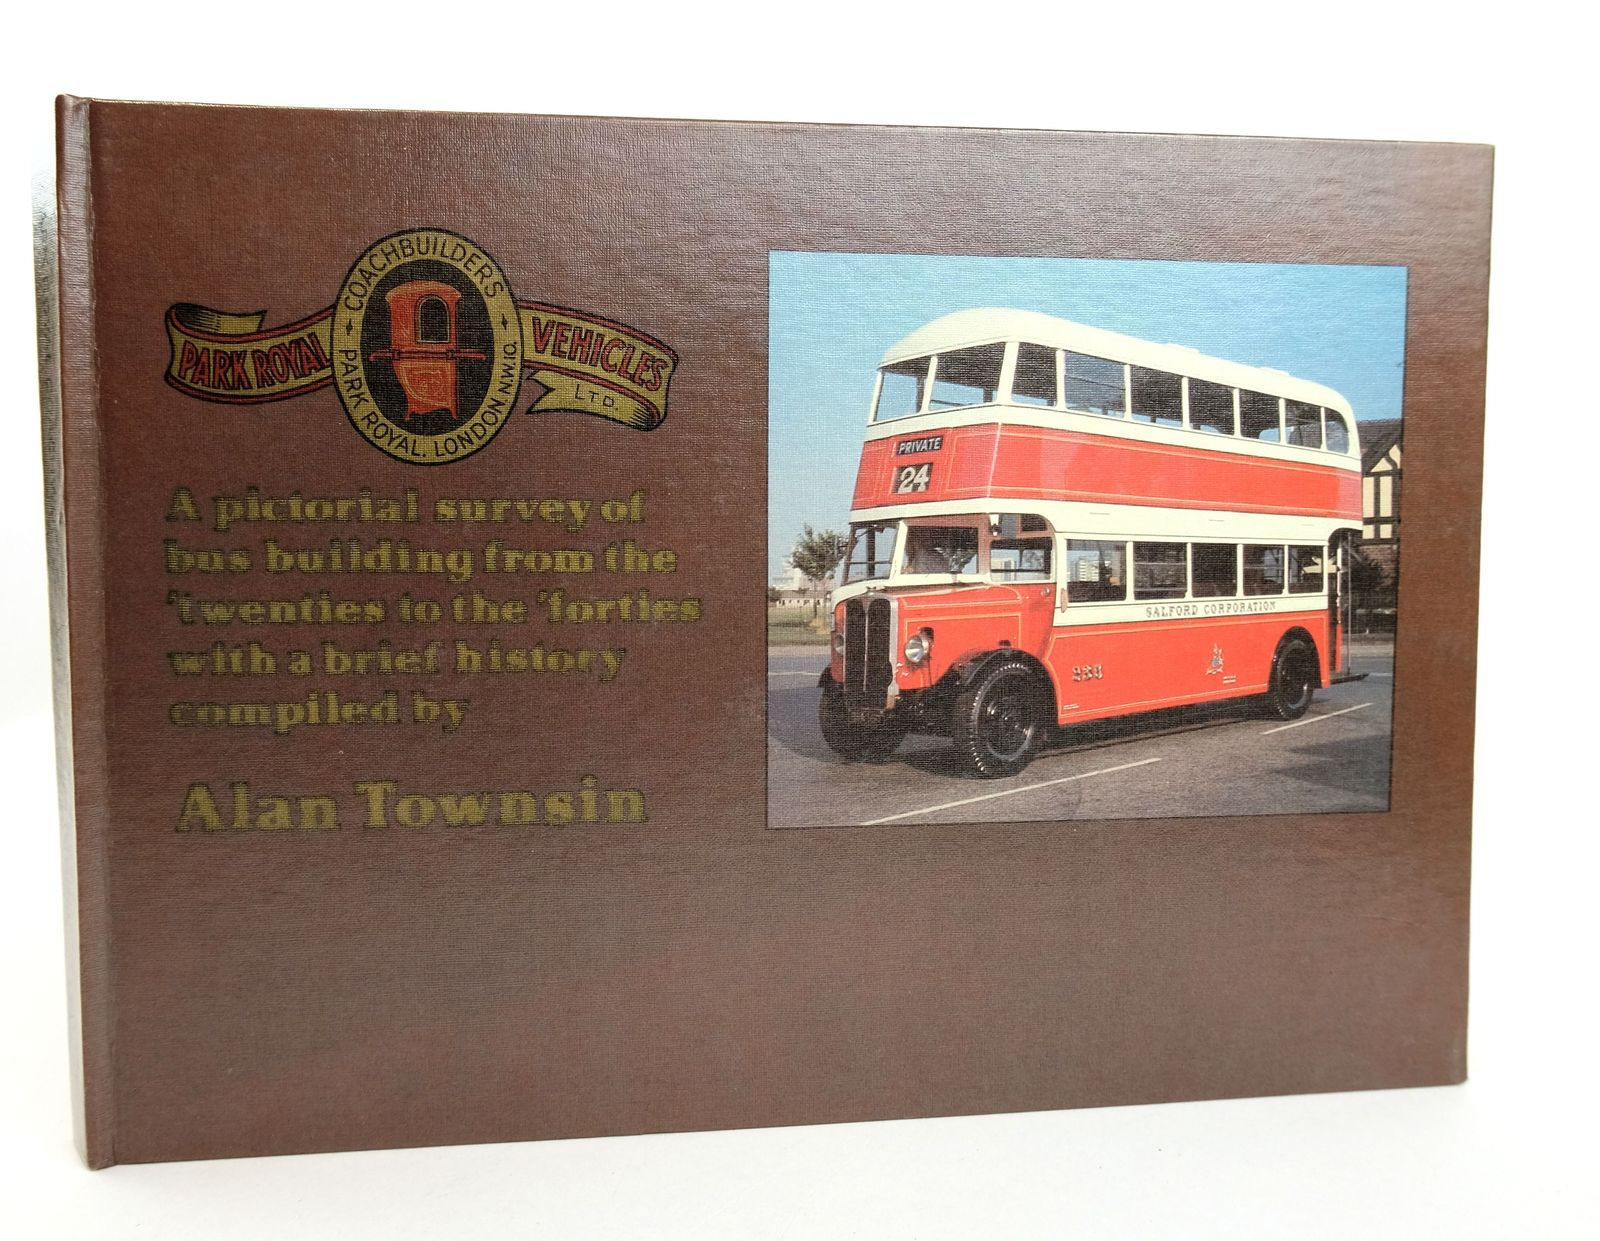 Photo of PARK ROYAL COACHWORKS VOLUME ONE 1924-1944 written by Townsin, Alan published by The Transport Publishing Company (STOCK CODE: 1818979)  for sale by Stella & Rose's Books